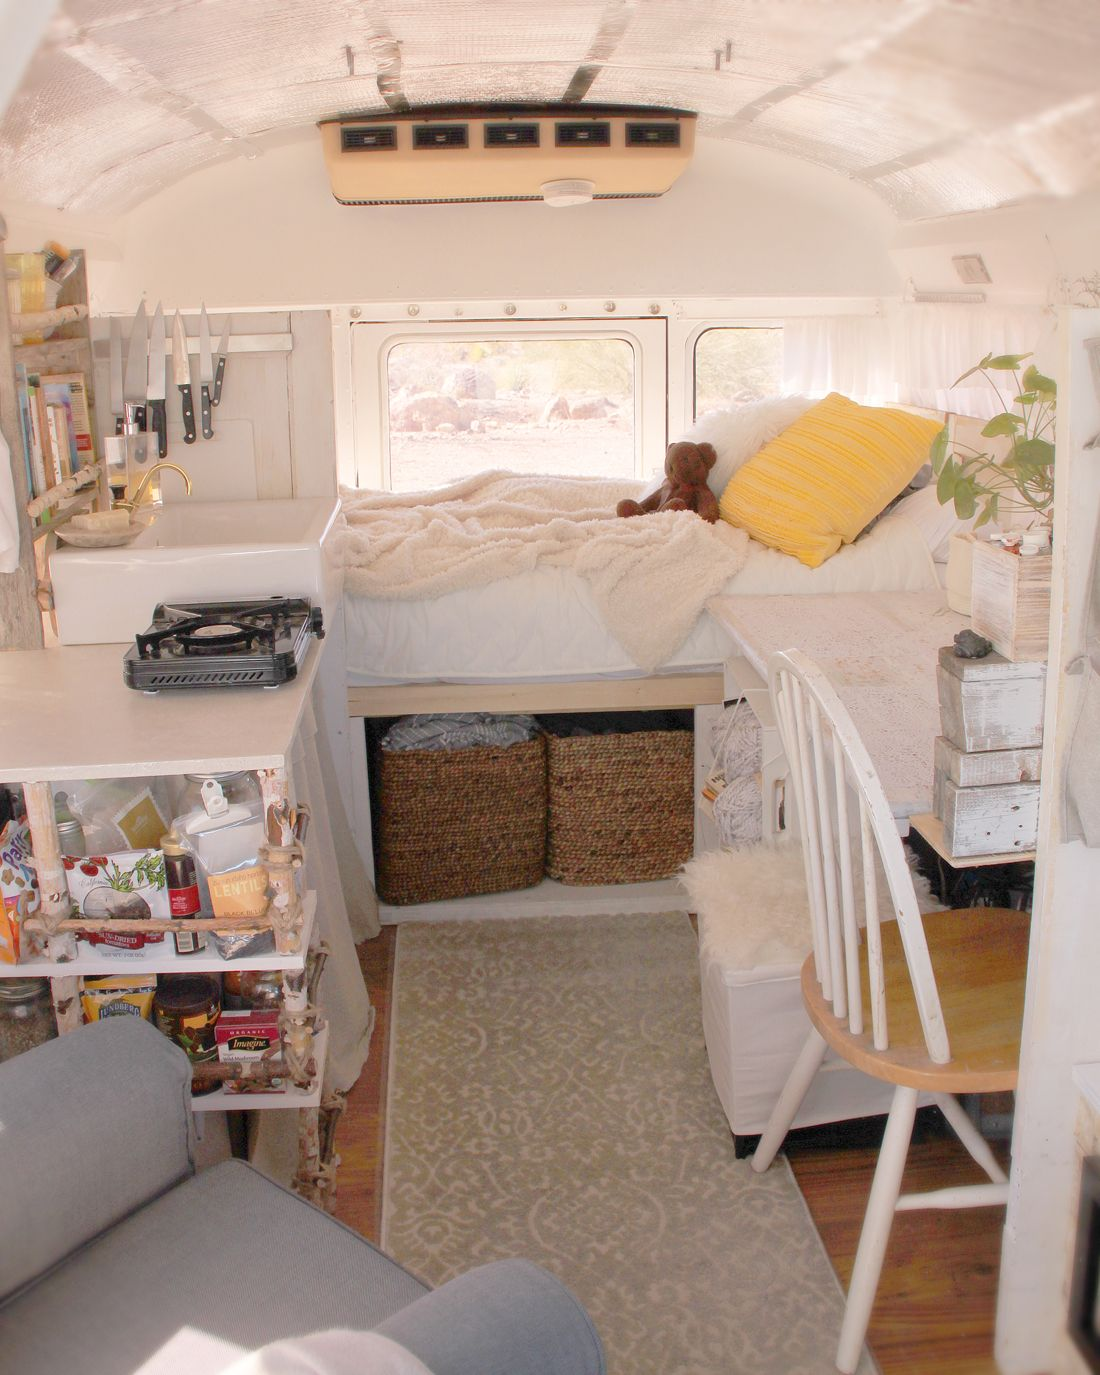 School bus conversion Home is where you